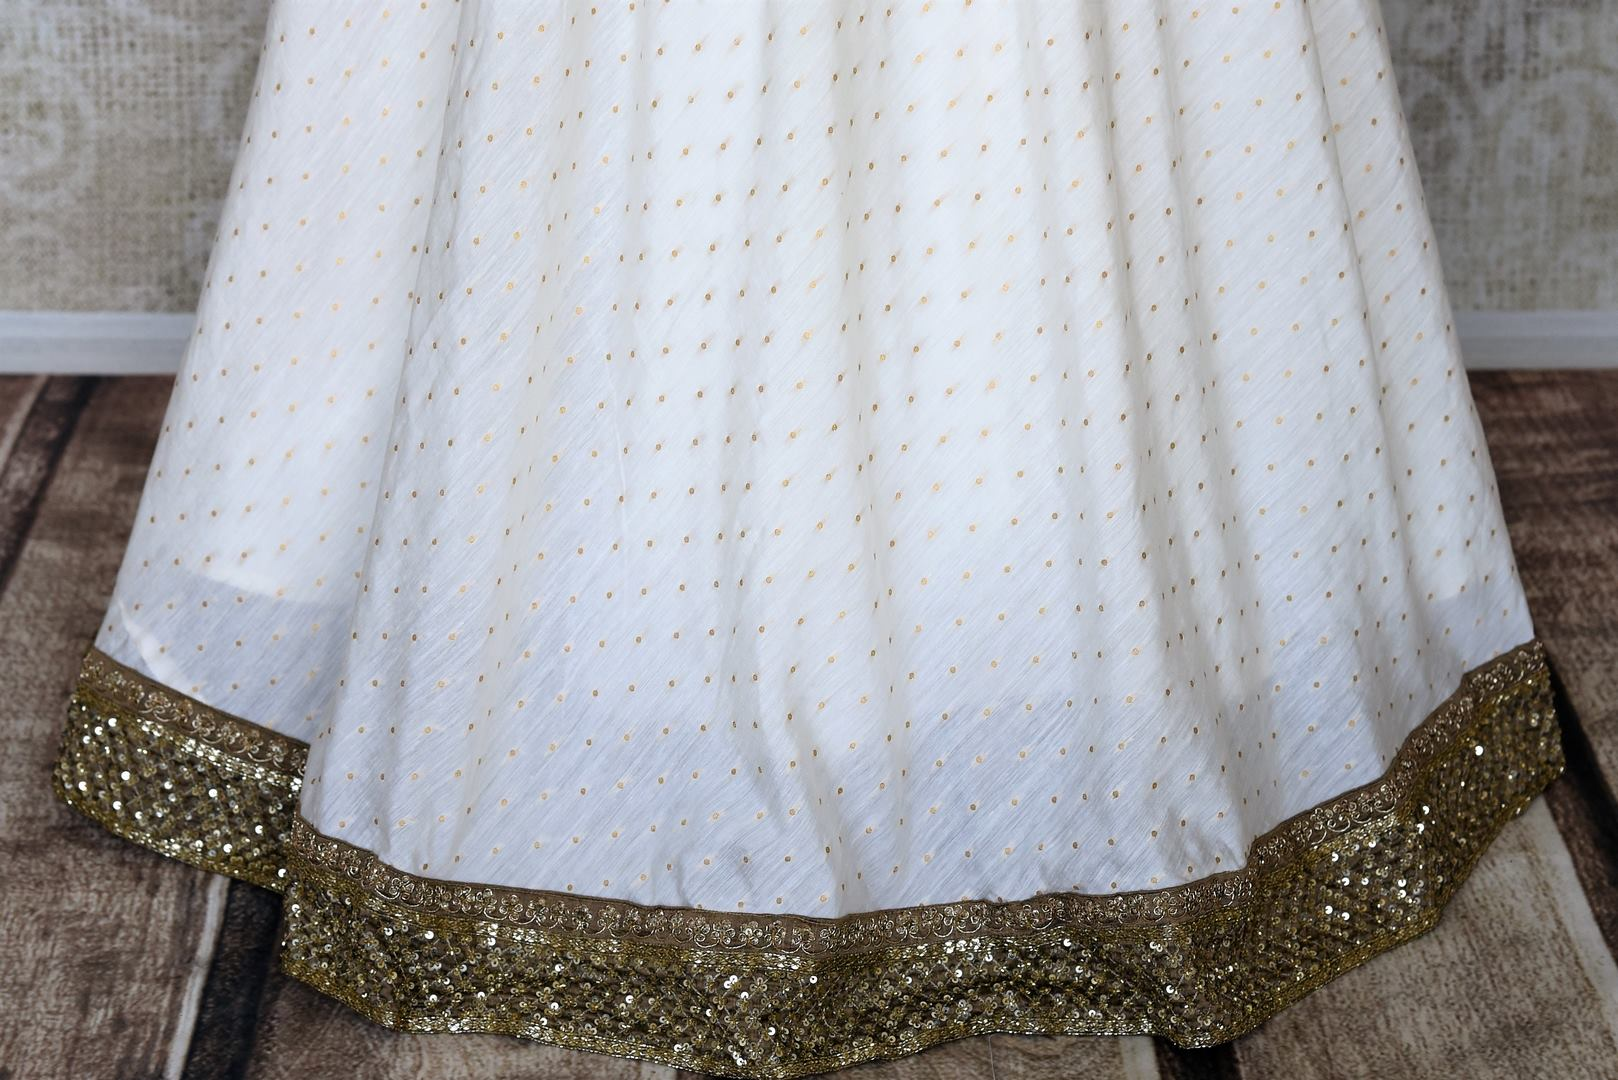 Shop white and green hand embroidery silk Anarkali dress online in USA. Raise your ethnic style quotient at special occasions with exquisite Indian clothing from Pure Elegance Indian clothing store in USA. Pick from a tasteful collection of designer lehengas, Anarkali suits, Indian dresses. Shop now.-bottom